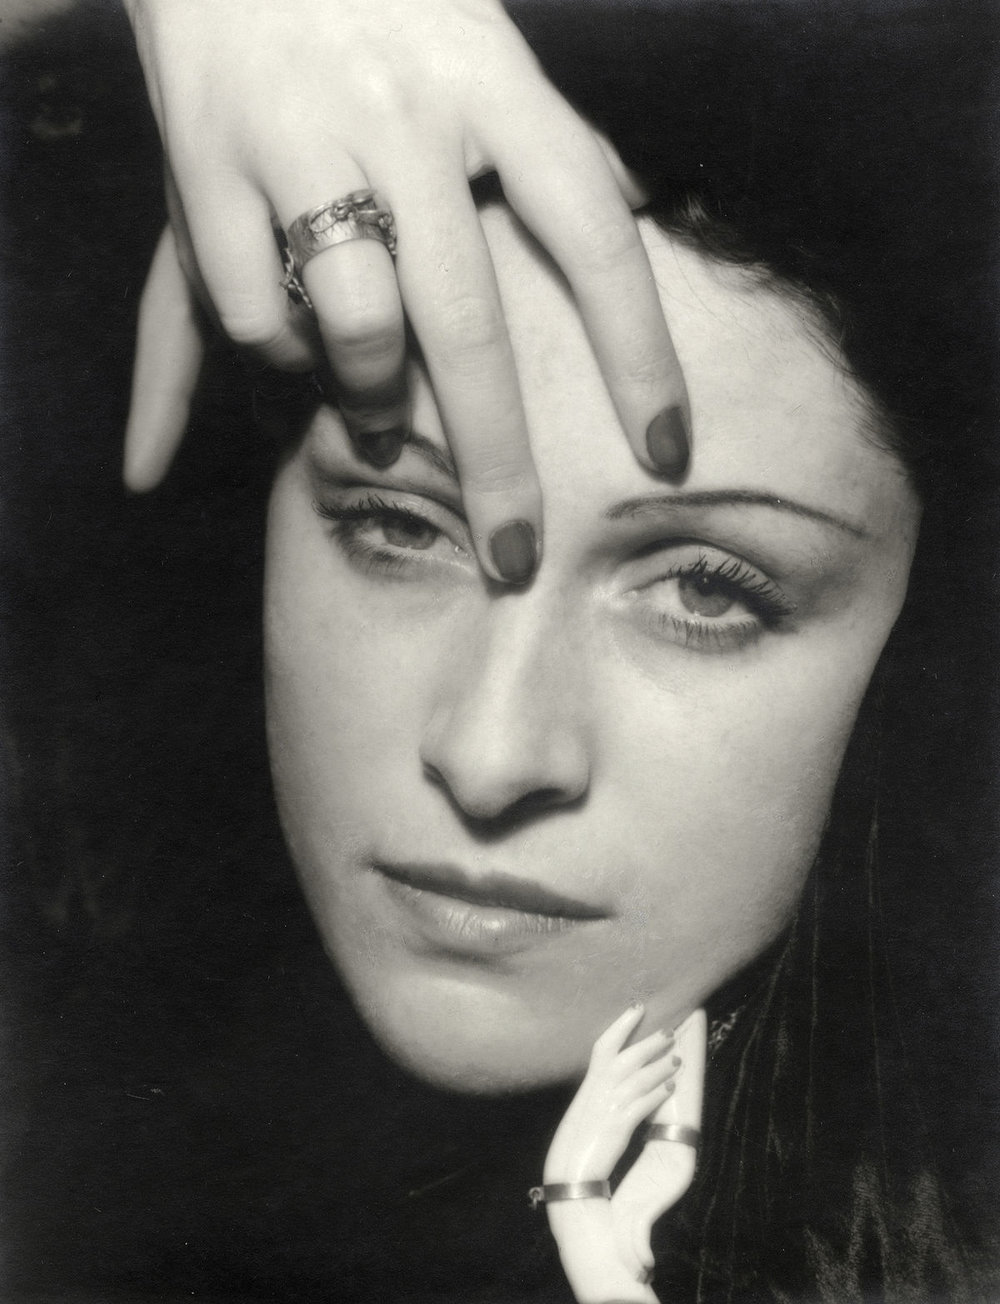 Dora Maar, photographed by Man Ray